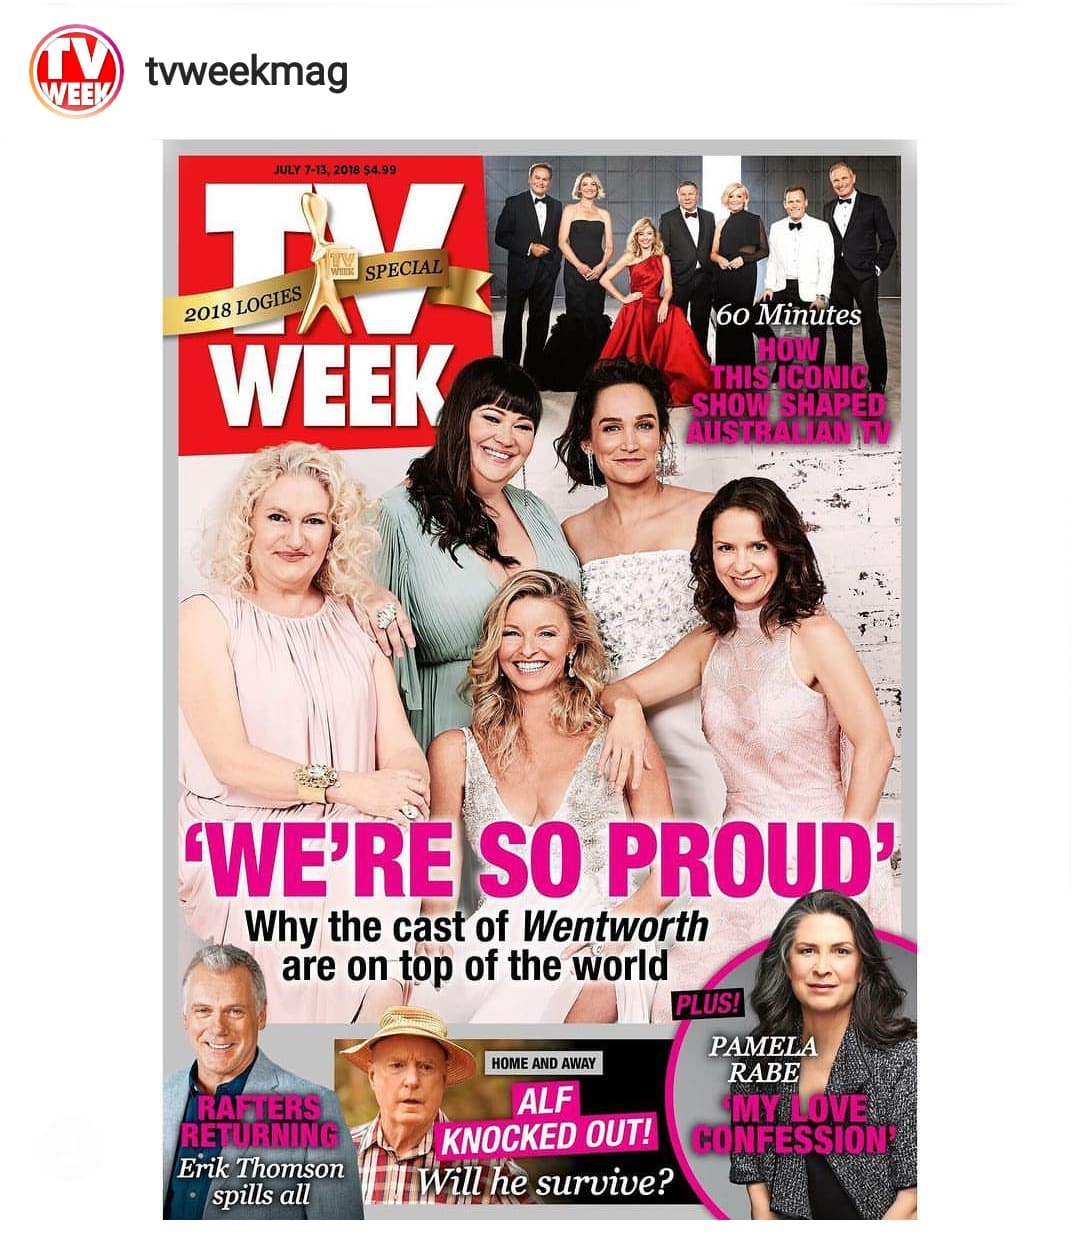 Congratulations to the amazing cast of Wentworth, in the photos are Celia Ireland, Sigrid Thornton, Katrina Milosevic, Kate Jenkinson, featured in TV Week photoshoot.